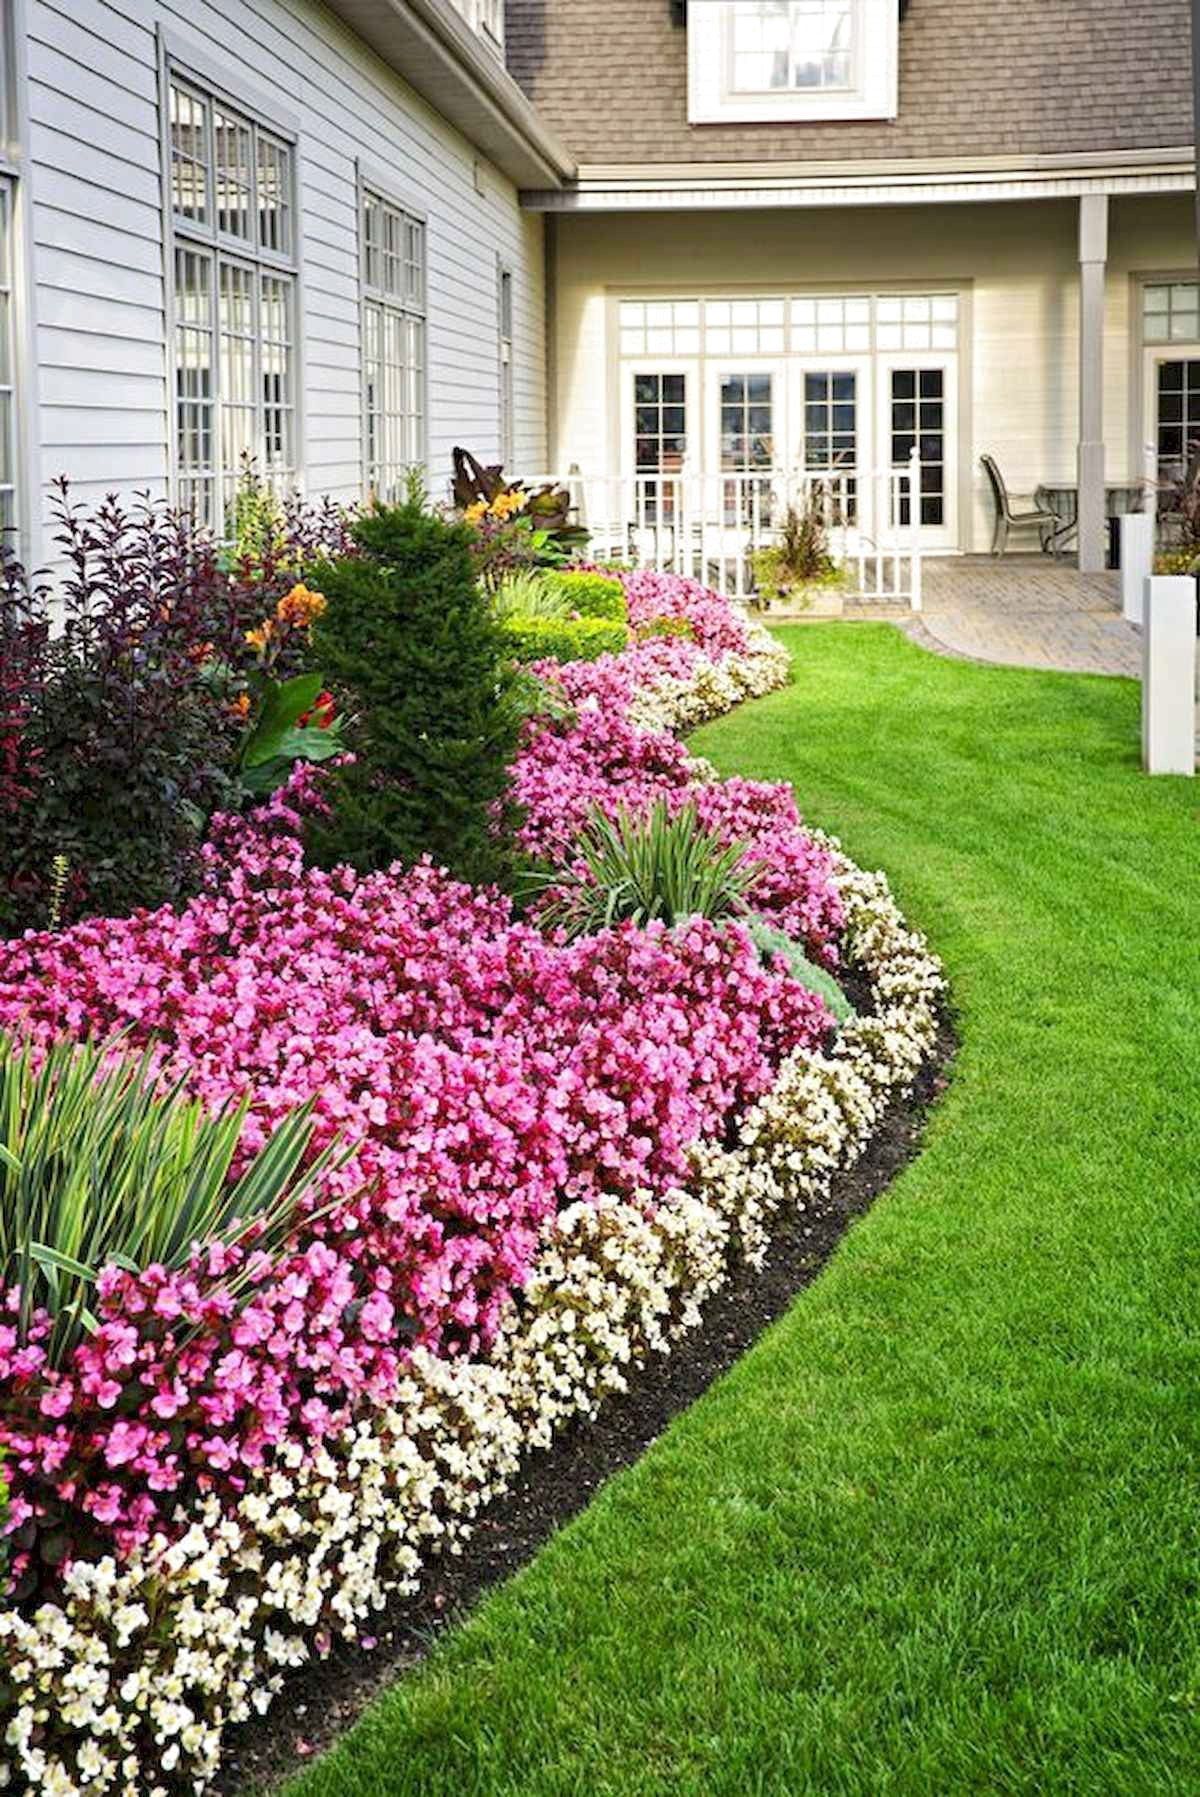 39 Awesame Front Yard Garden Landscaping Design Ideas And Remodel